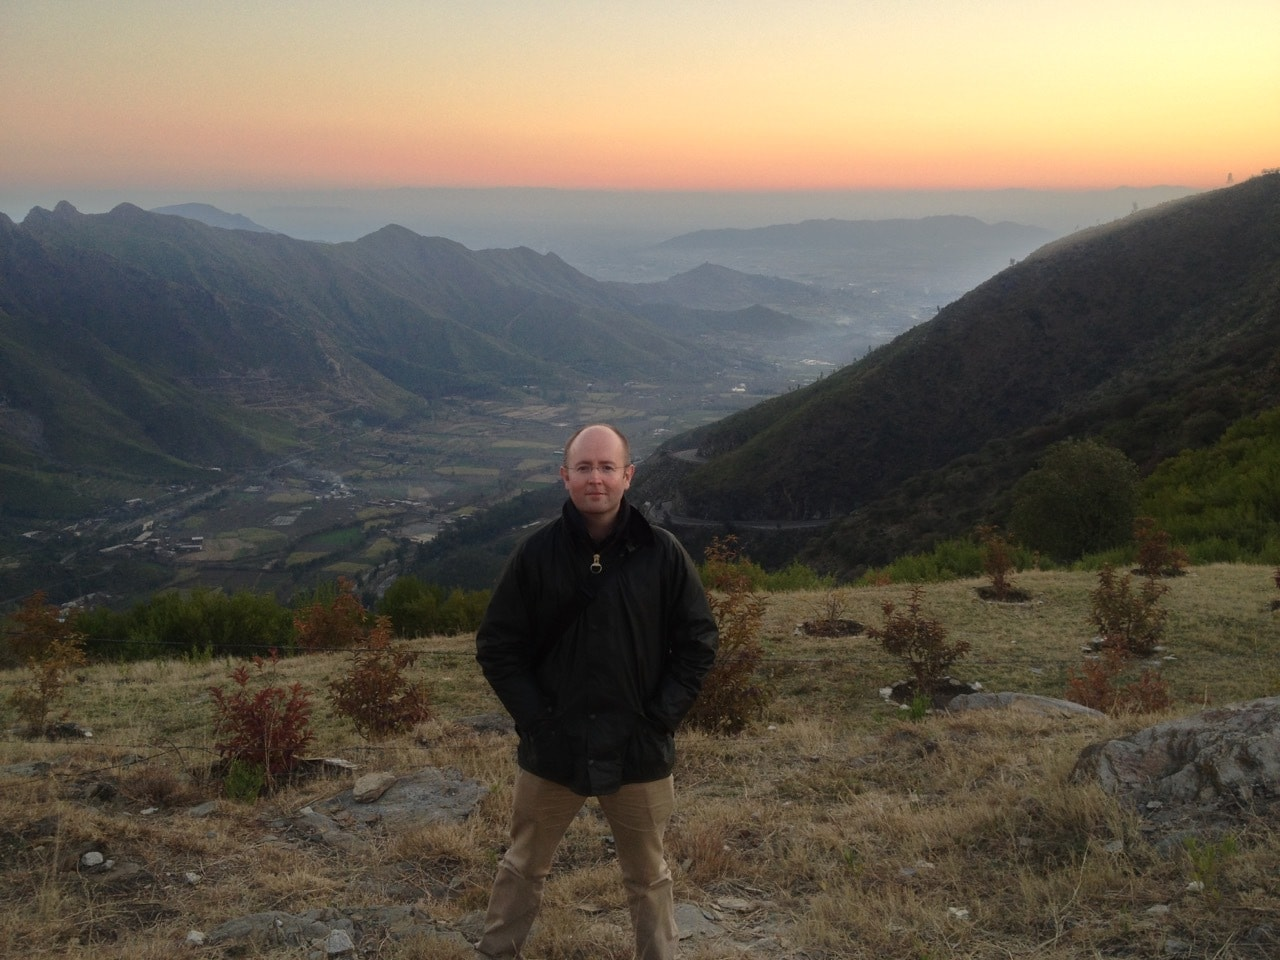 Dr John Horgan on his visit to Swat Valley.